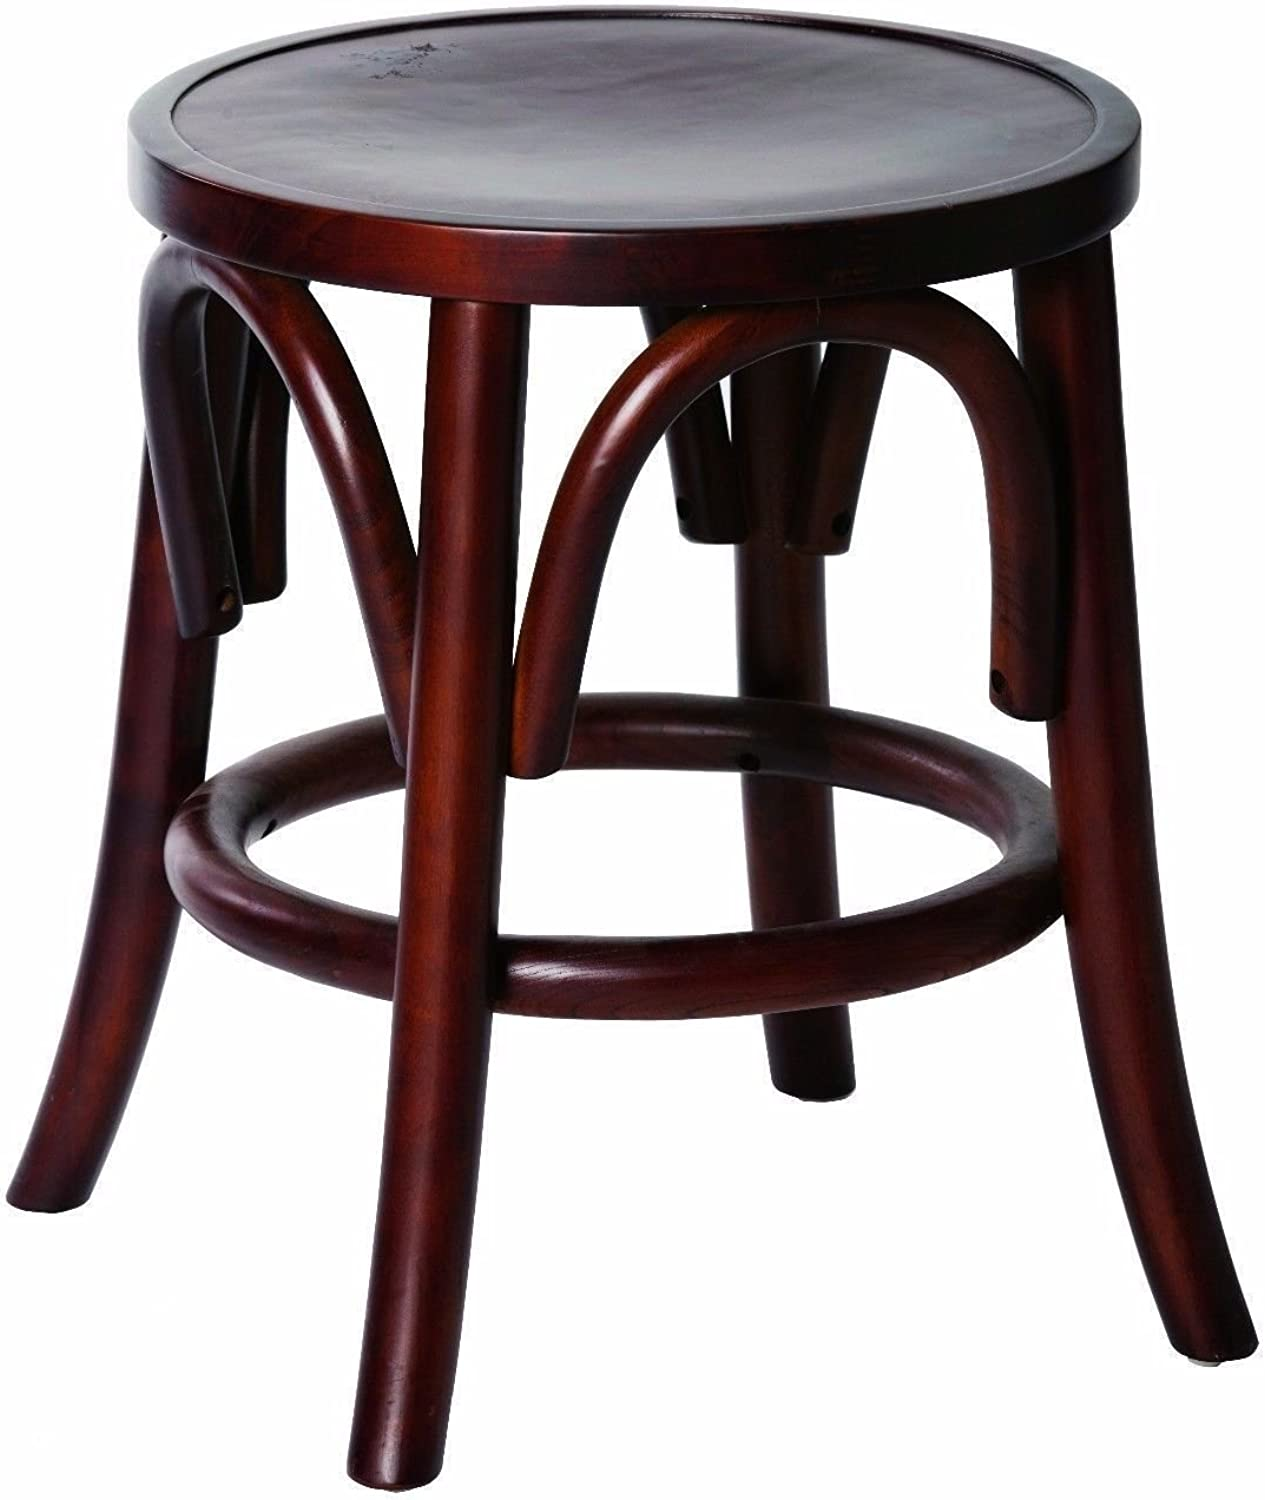 Nelson Replica Thonet Bentwood Chair Height Stool 460mm